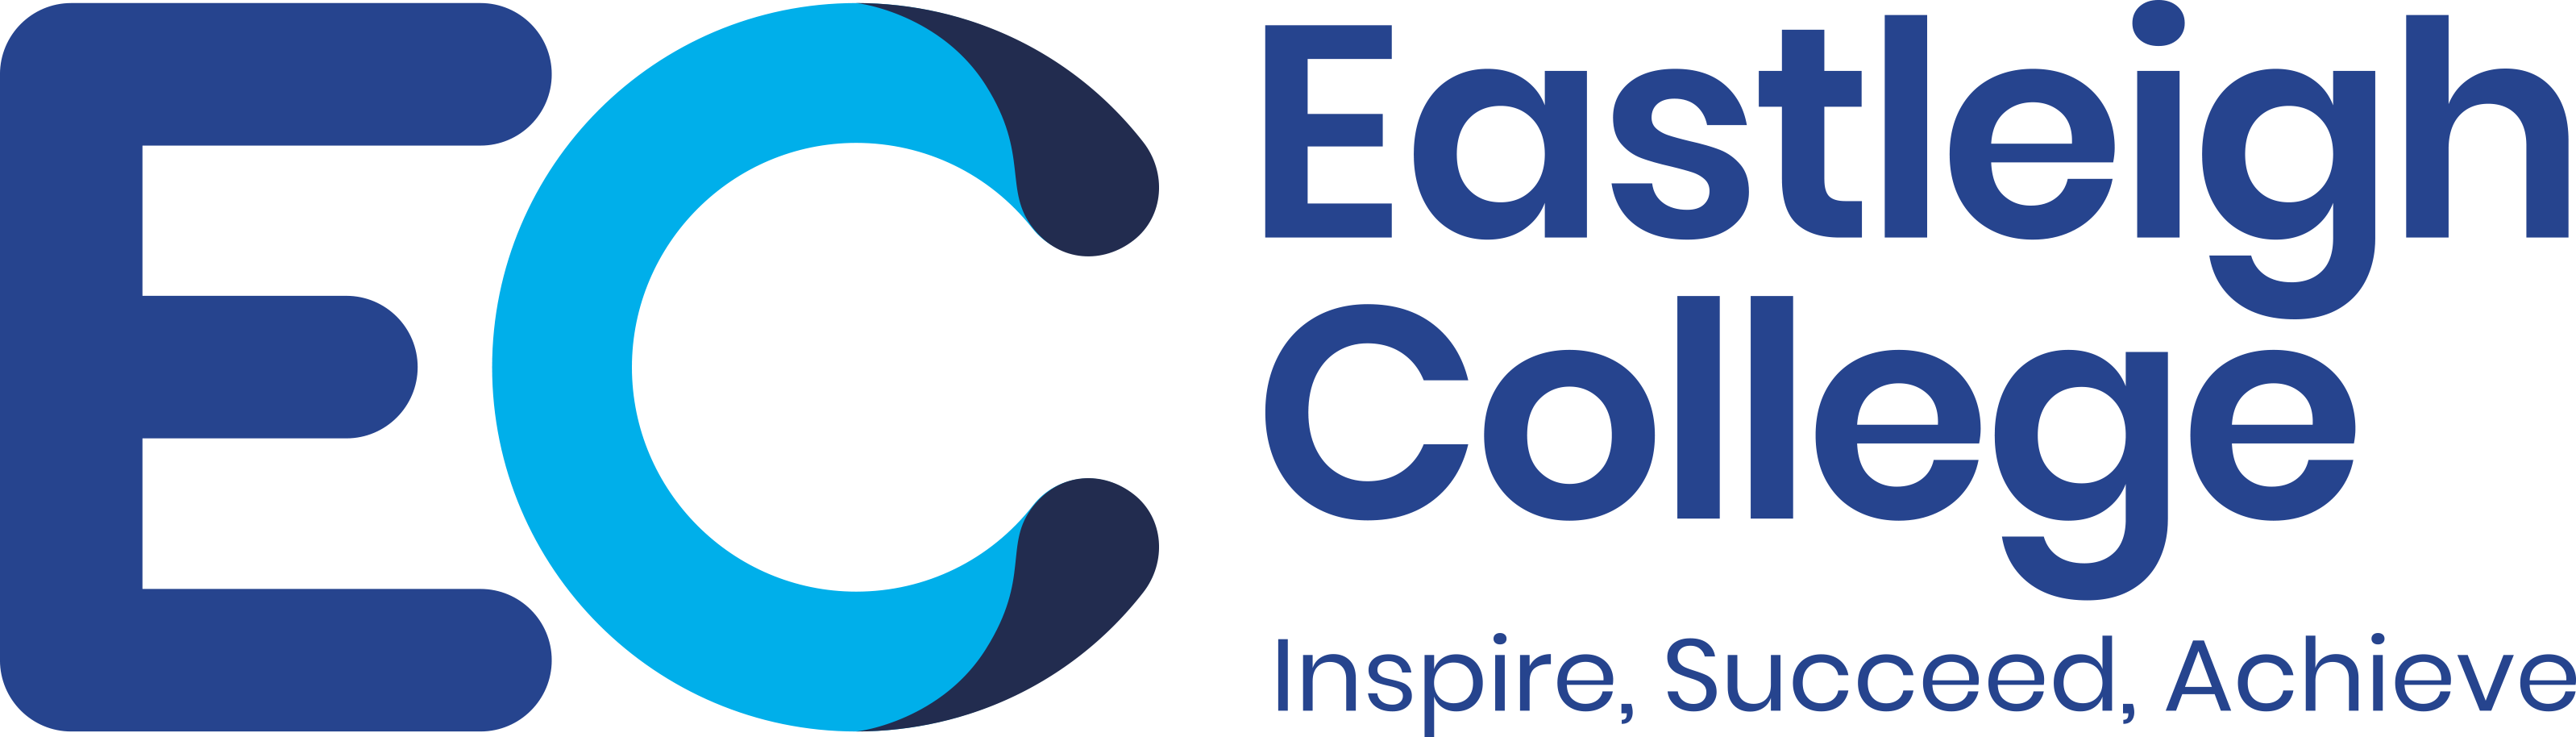 Eastleigh College Logo